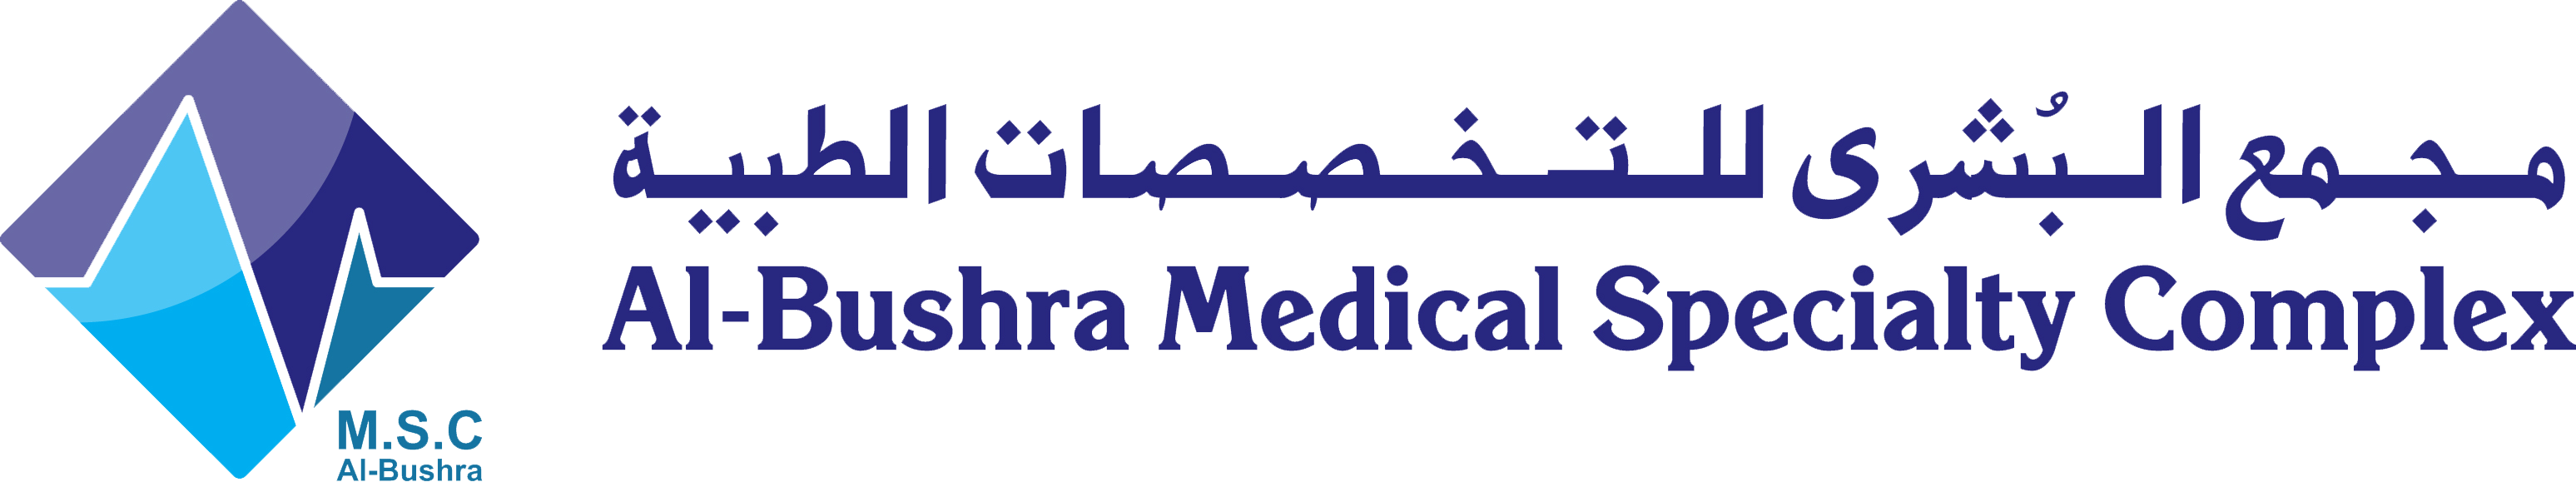 Al-Bushra Medical Specialty Complex